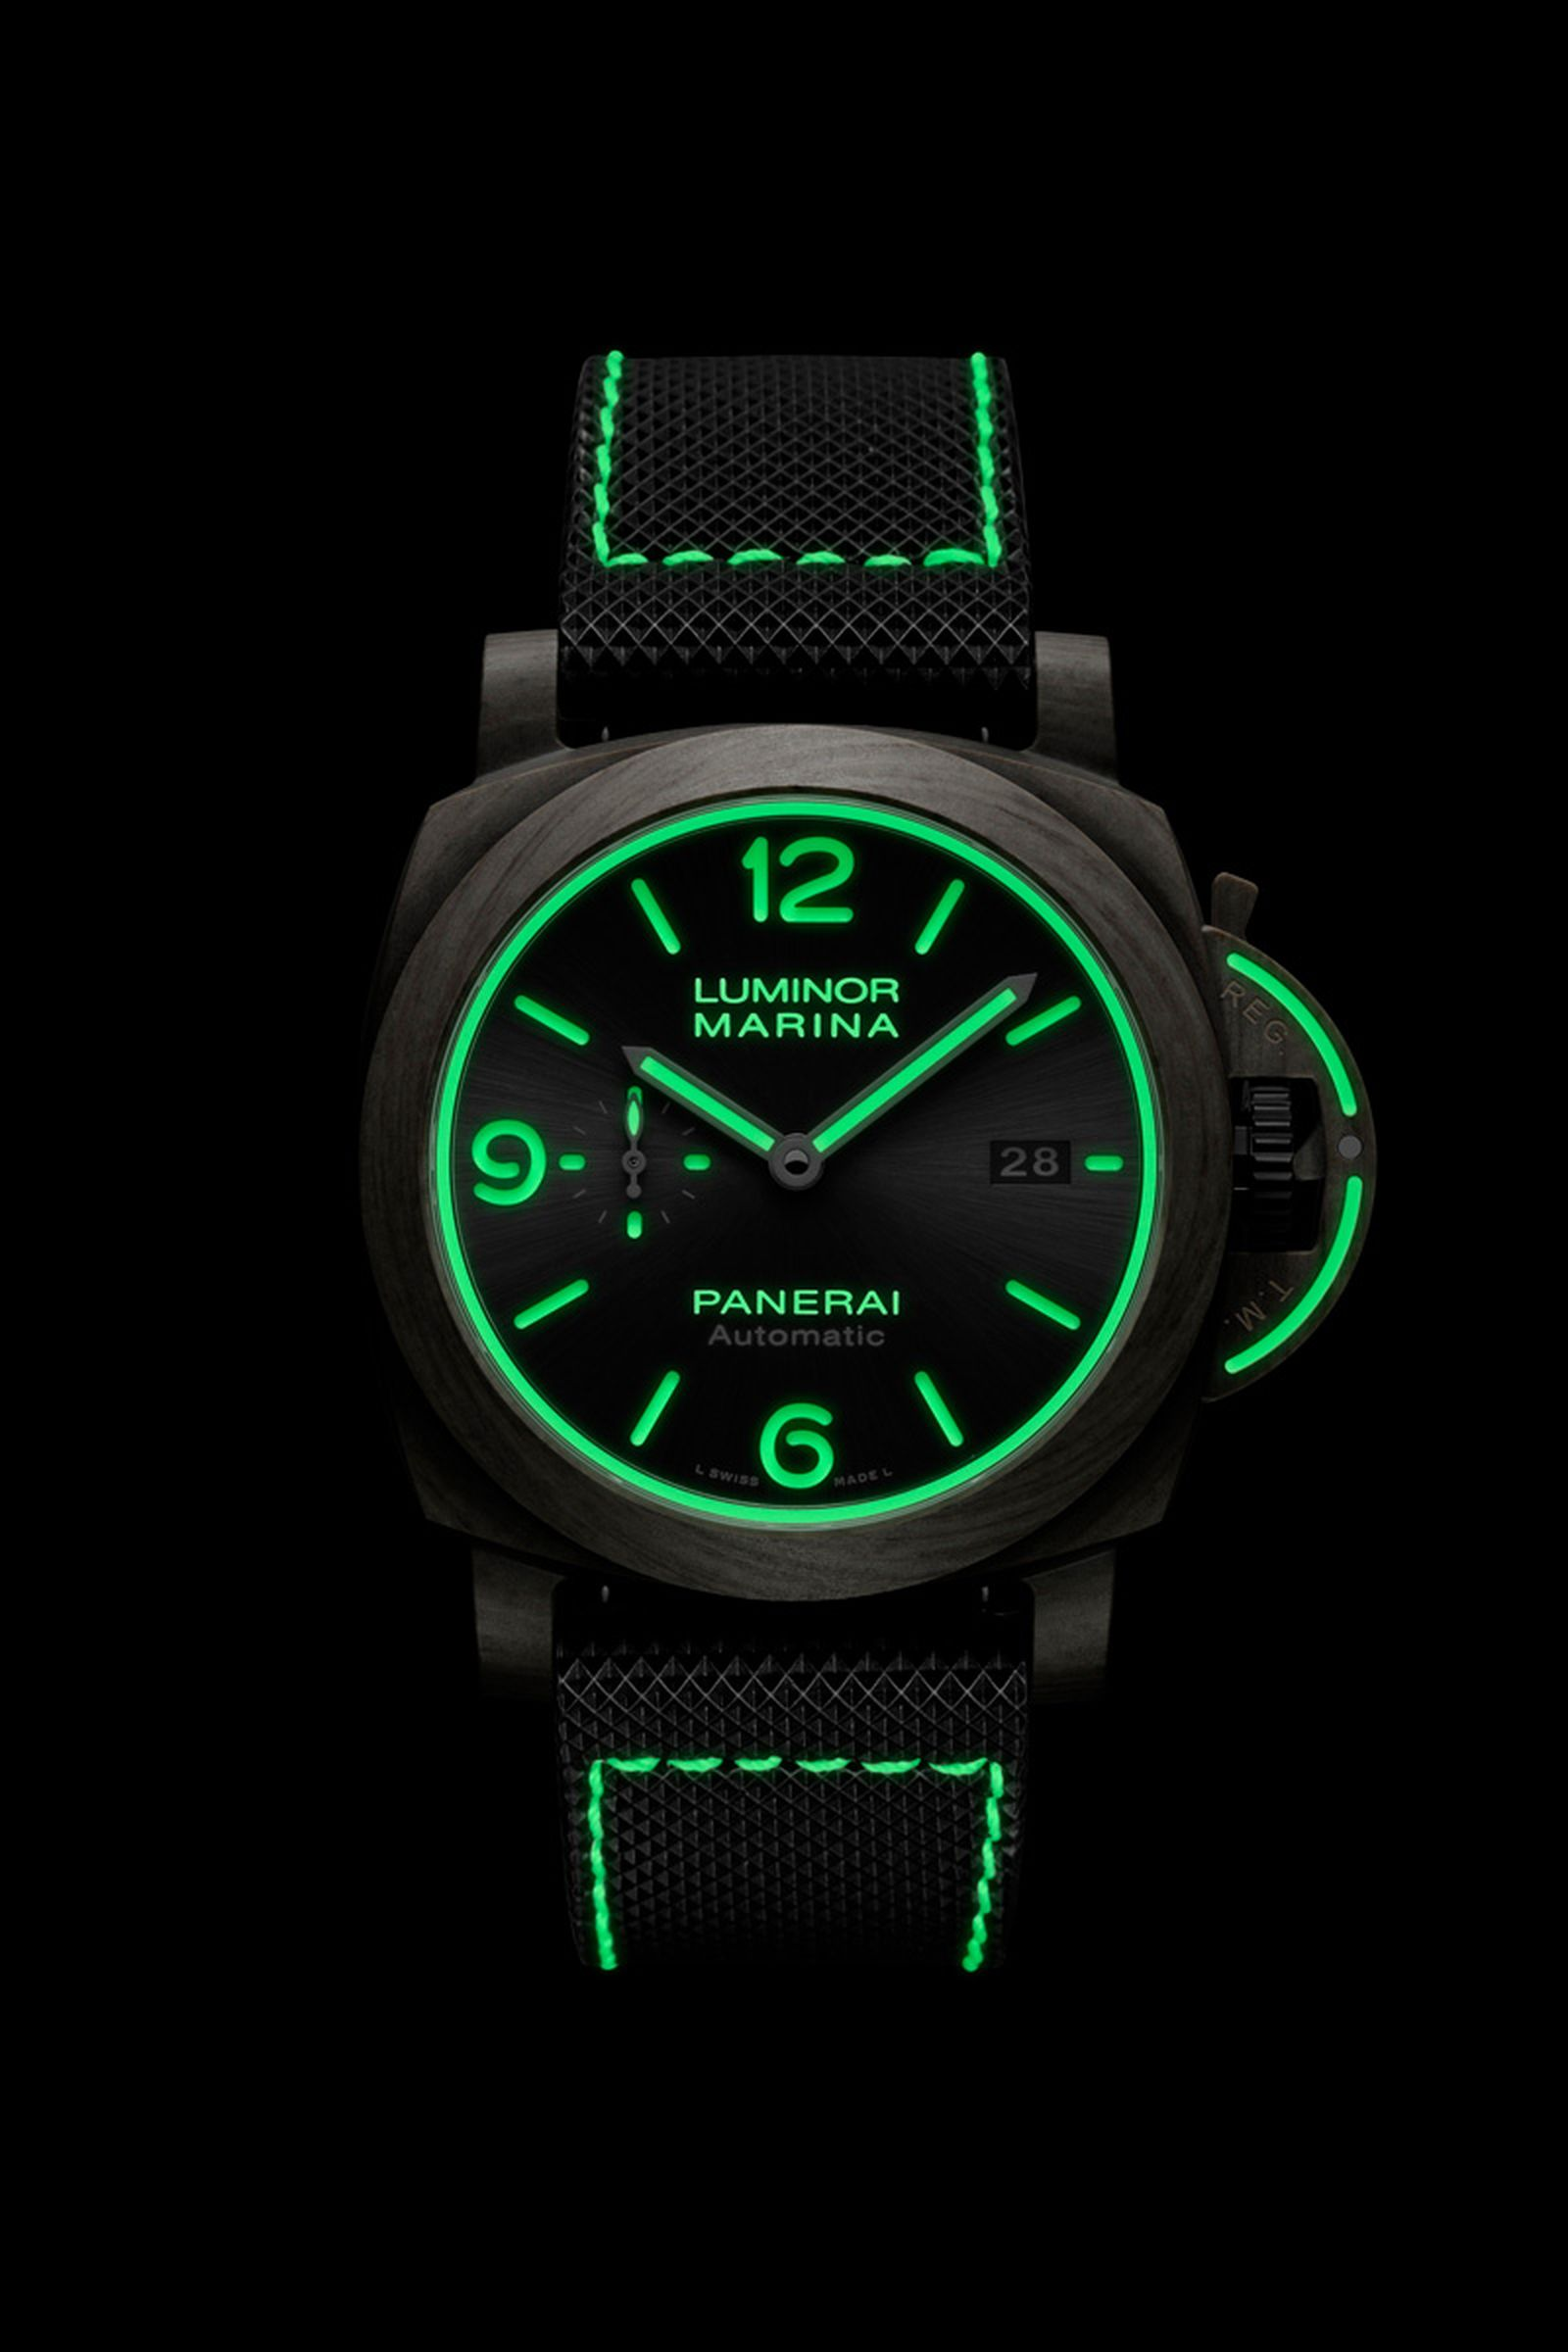 rethink-timing-four-cool-watches-watchesandwonders-com-03